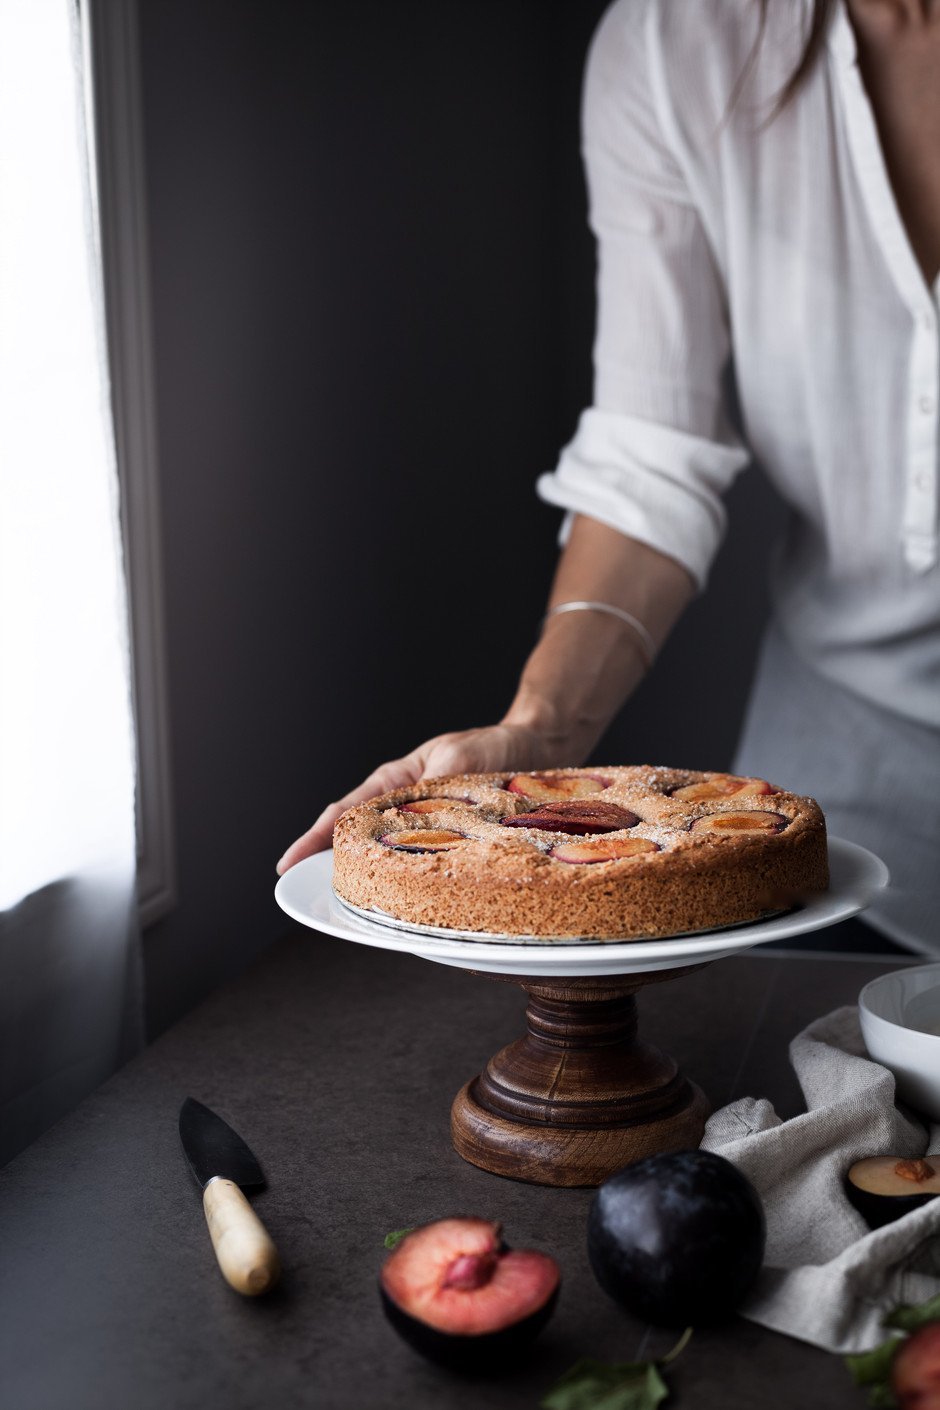 portrait of a person holding a plum cake on a cake stand.